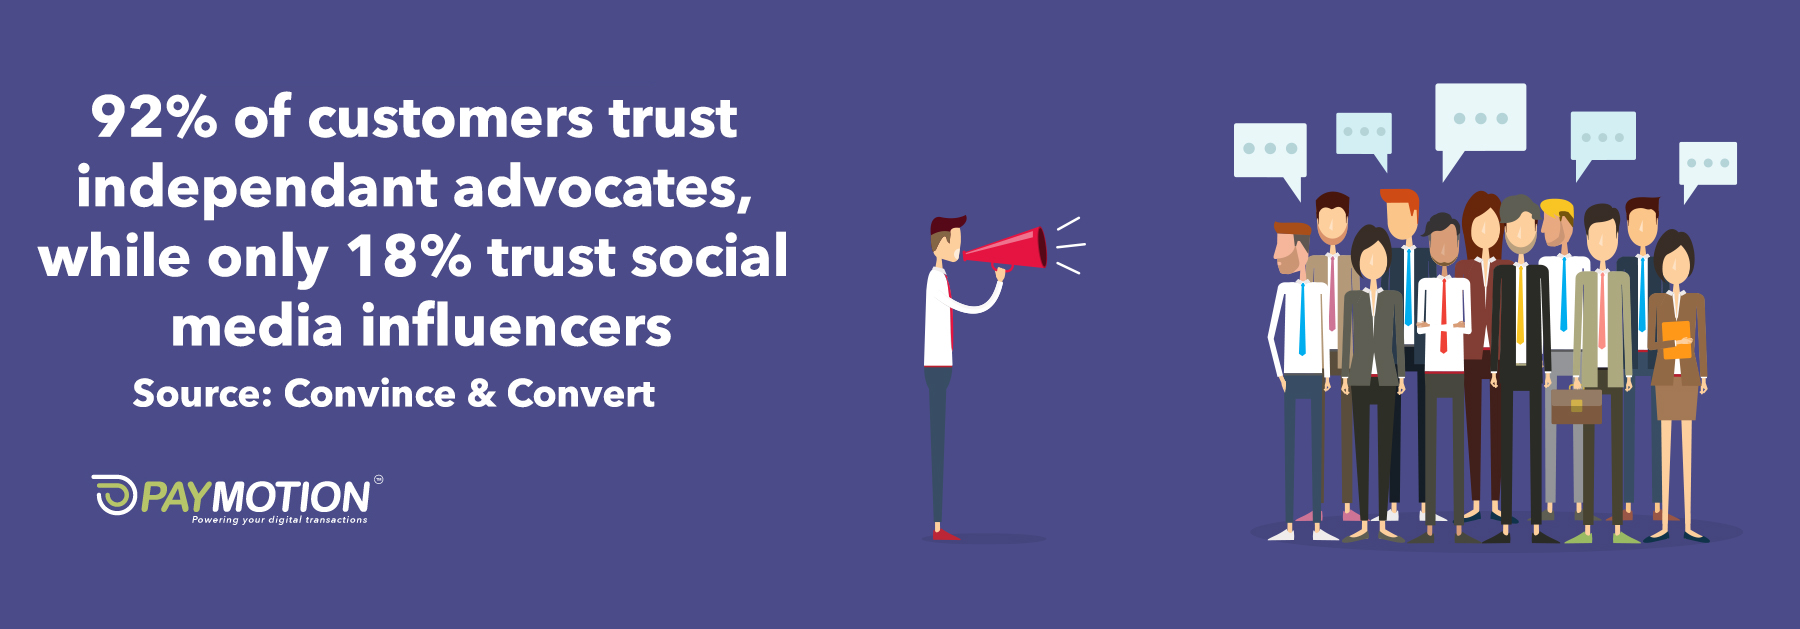 Studies show that 92% of customers trust independent advocates, while only 18% trust sponsored social media influencers.